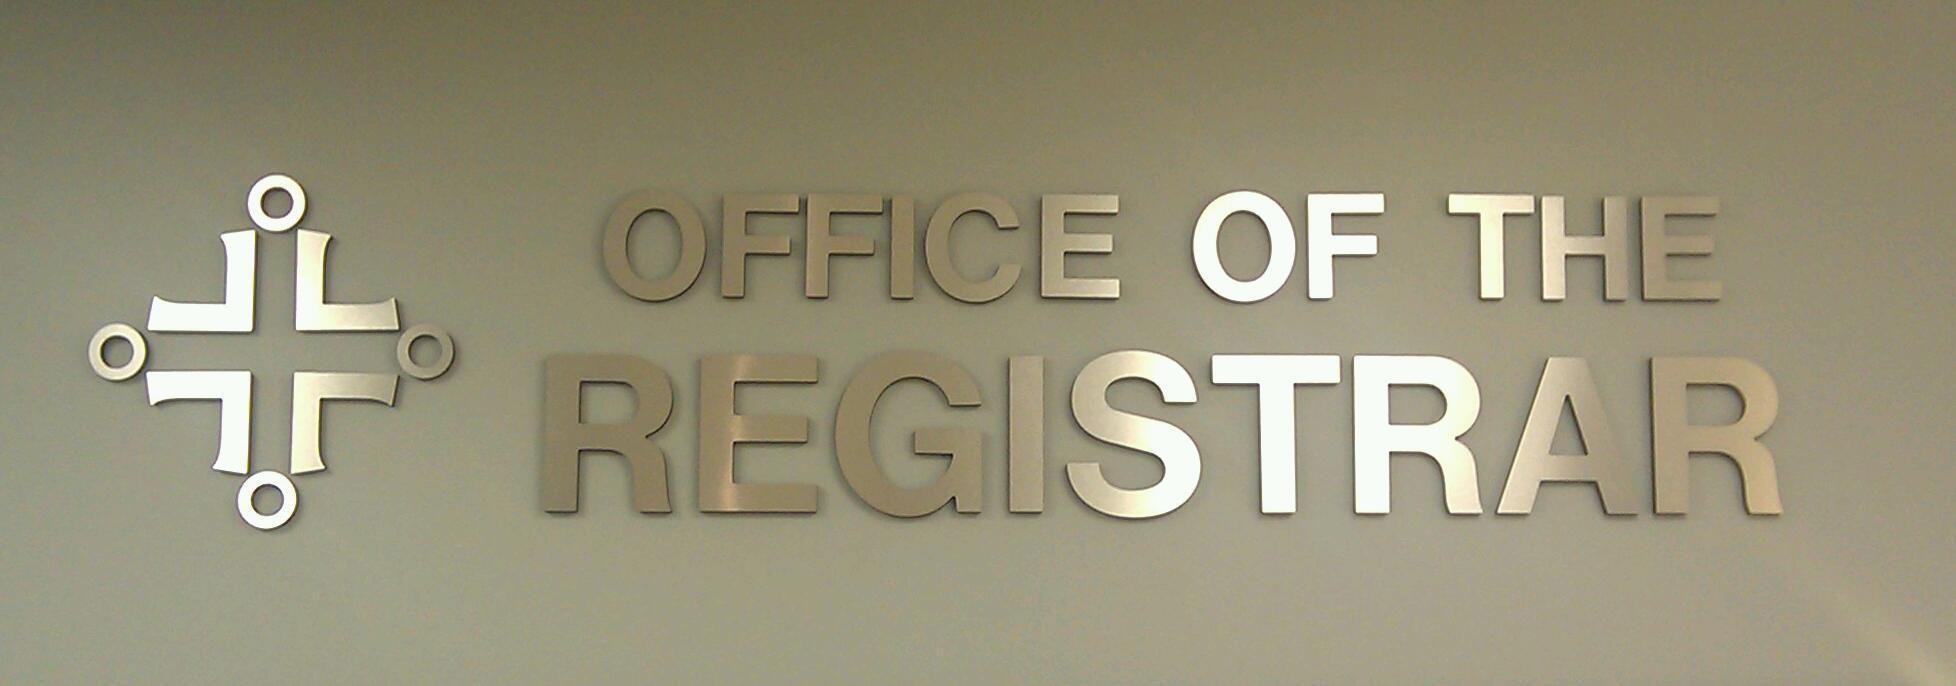 OfficeOfRegistrarSign.jpg